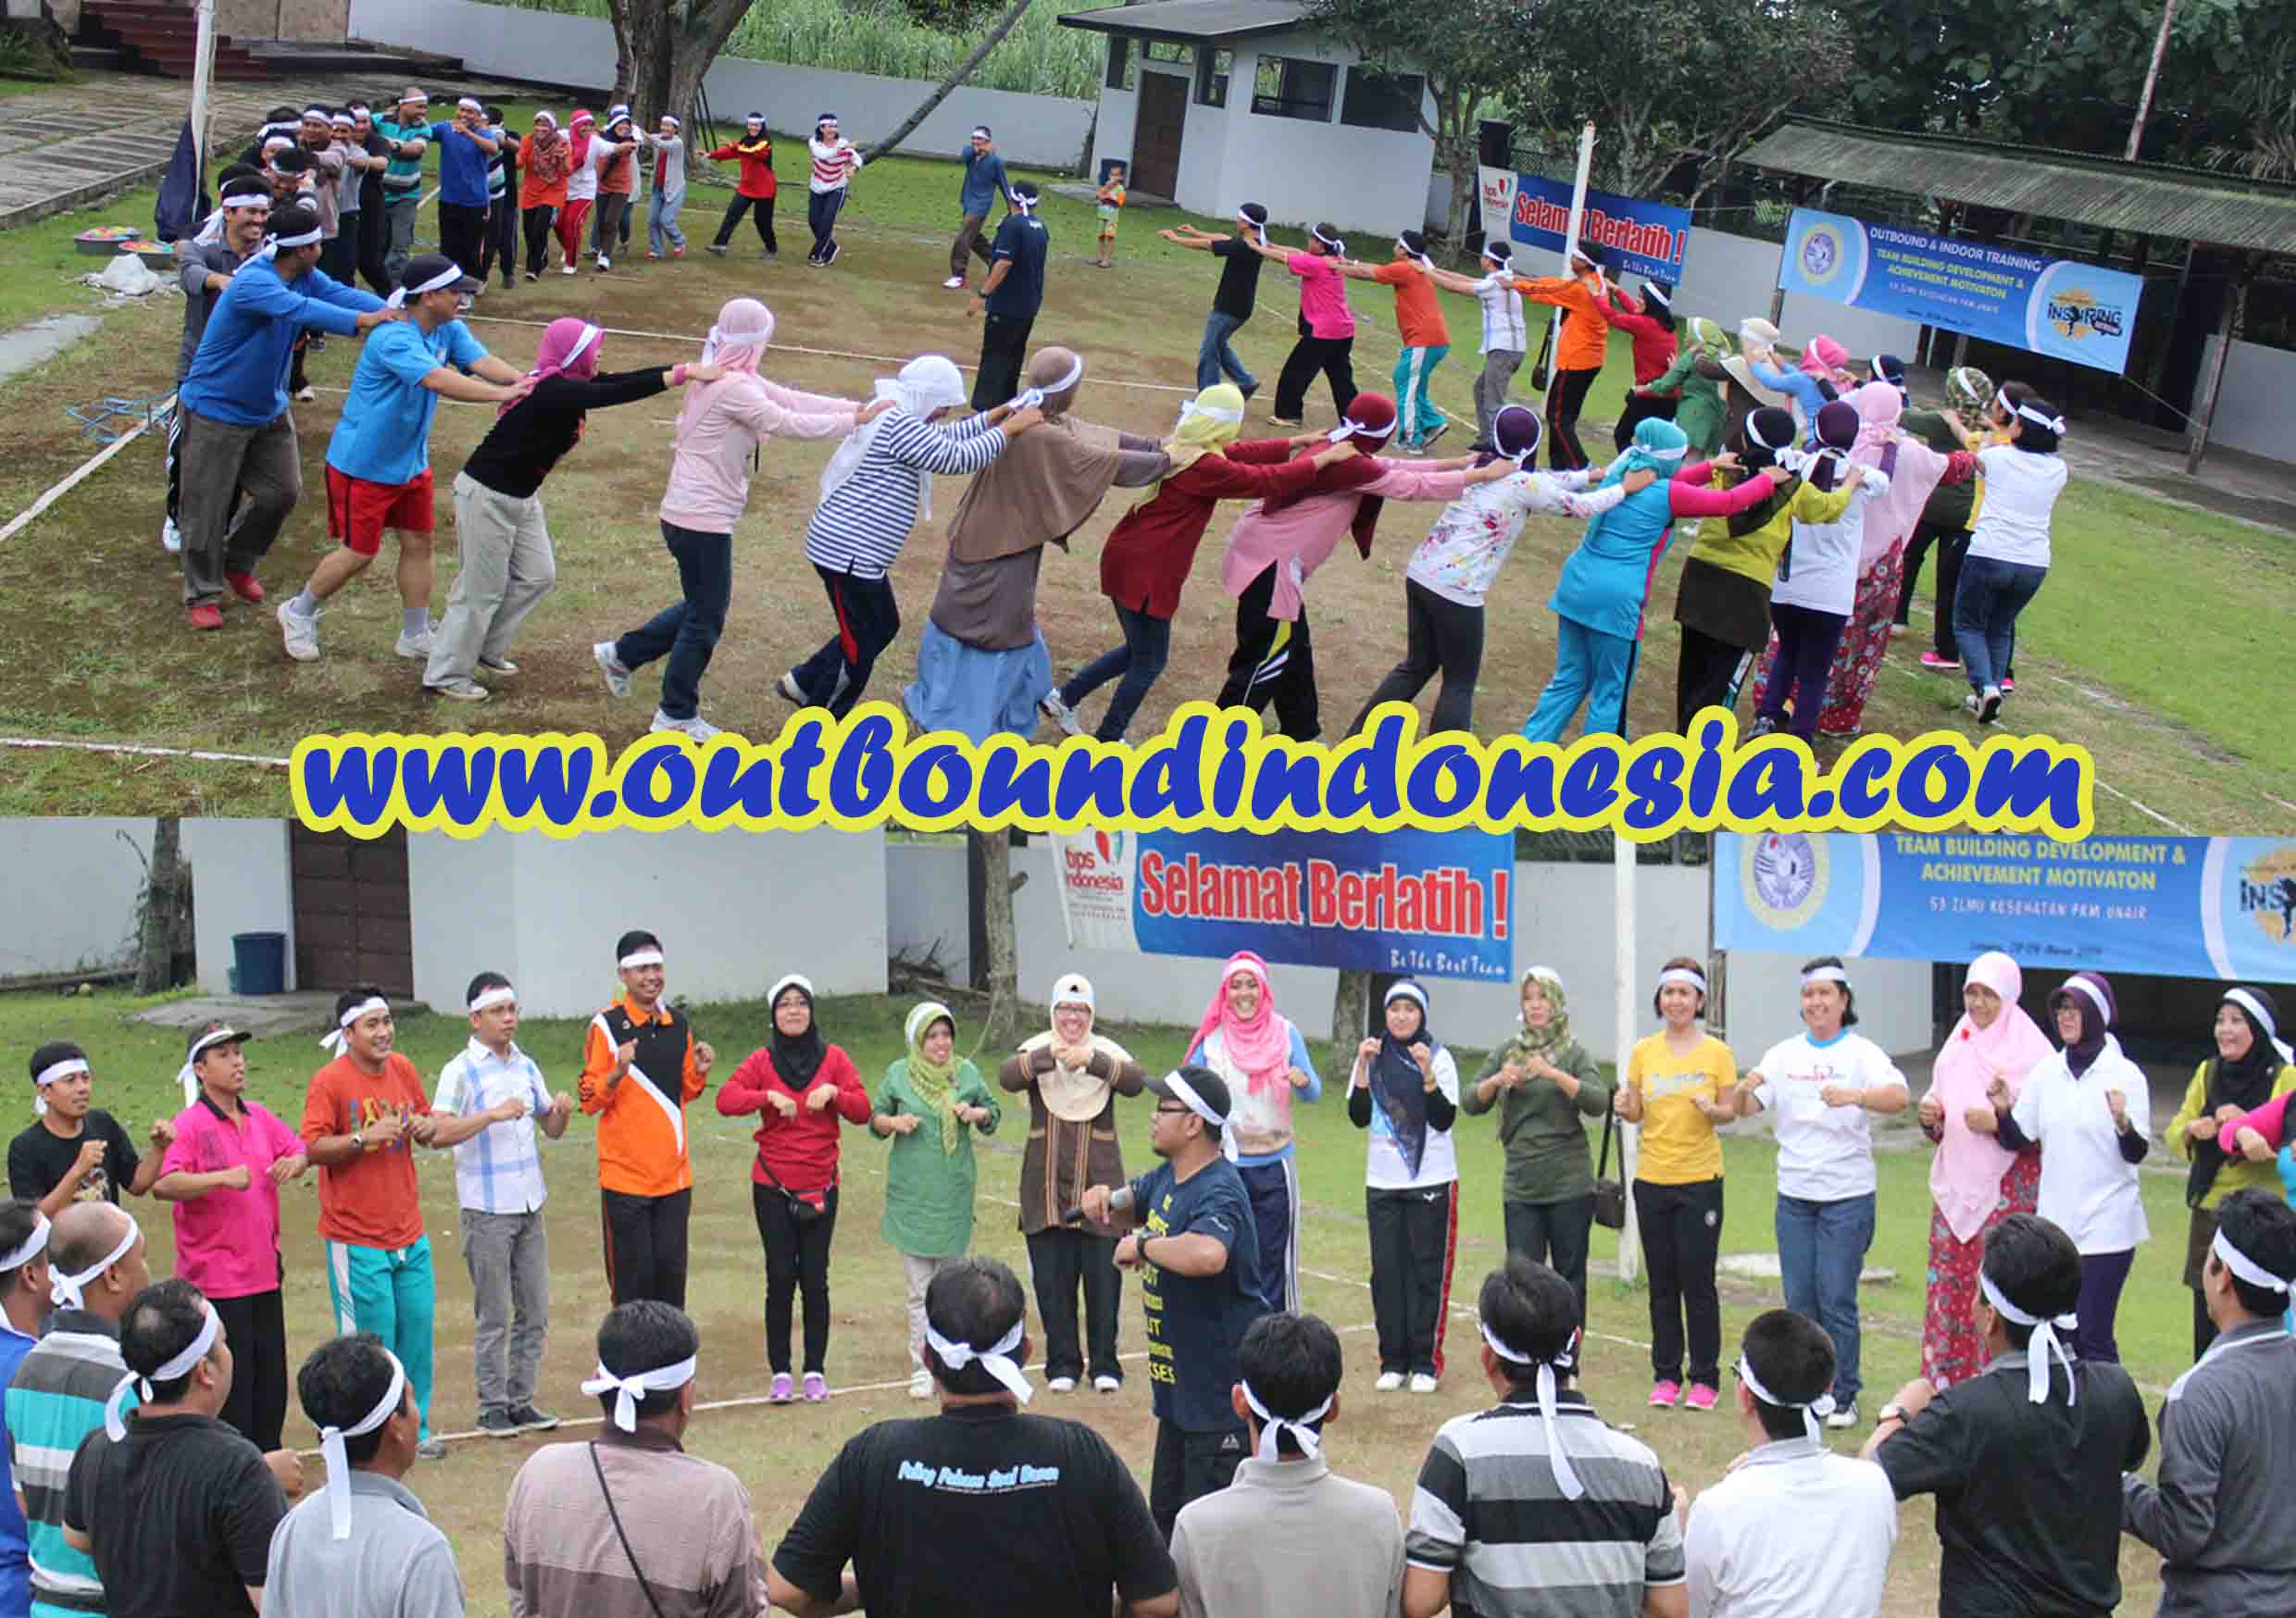 outbound training FKM UNAIR di kebun teh wonosari lawang malang, www.outboundidonesia.com, 087836152078